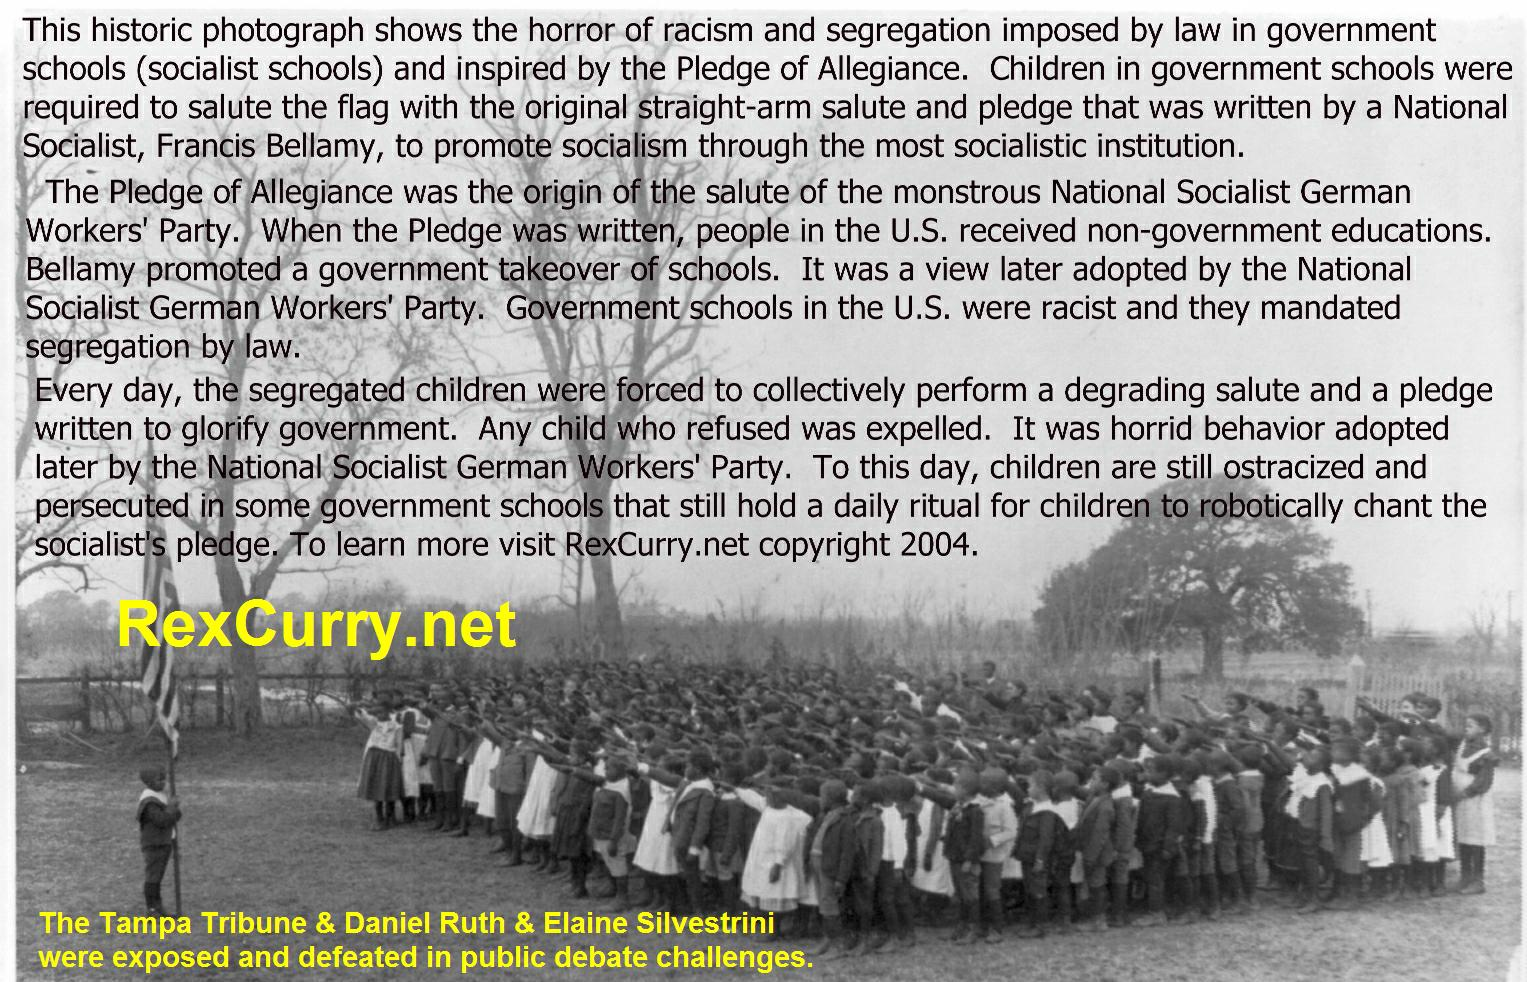 D-Day & Pledge of Allegiance, Francis Bellamy, Edward Bellamy, Industrial Army, Military Socialism